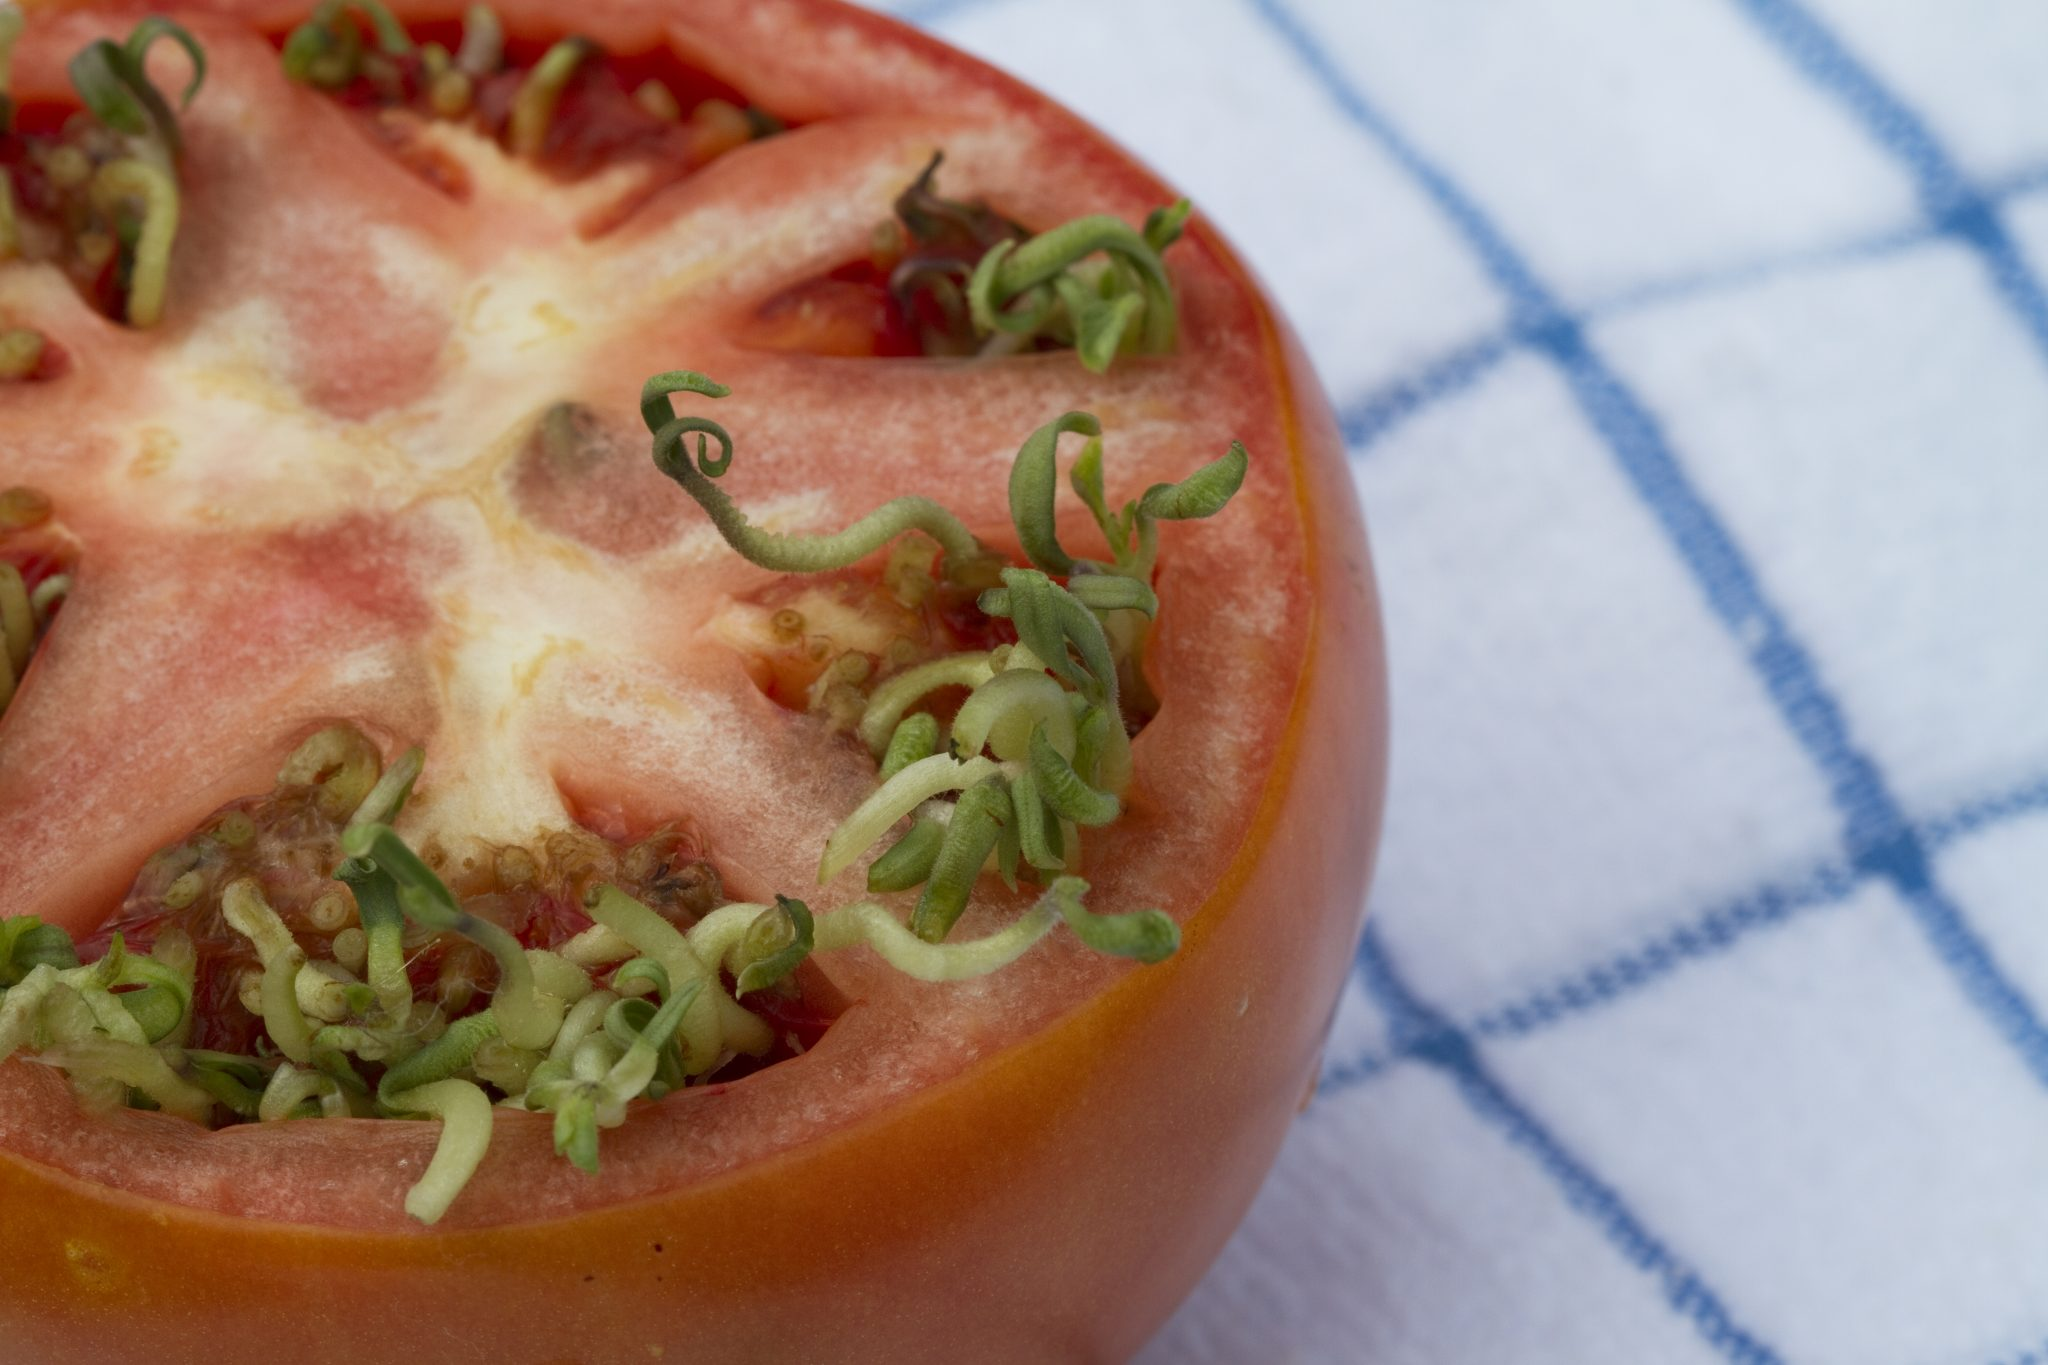 Vivipary in tomatoes